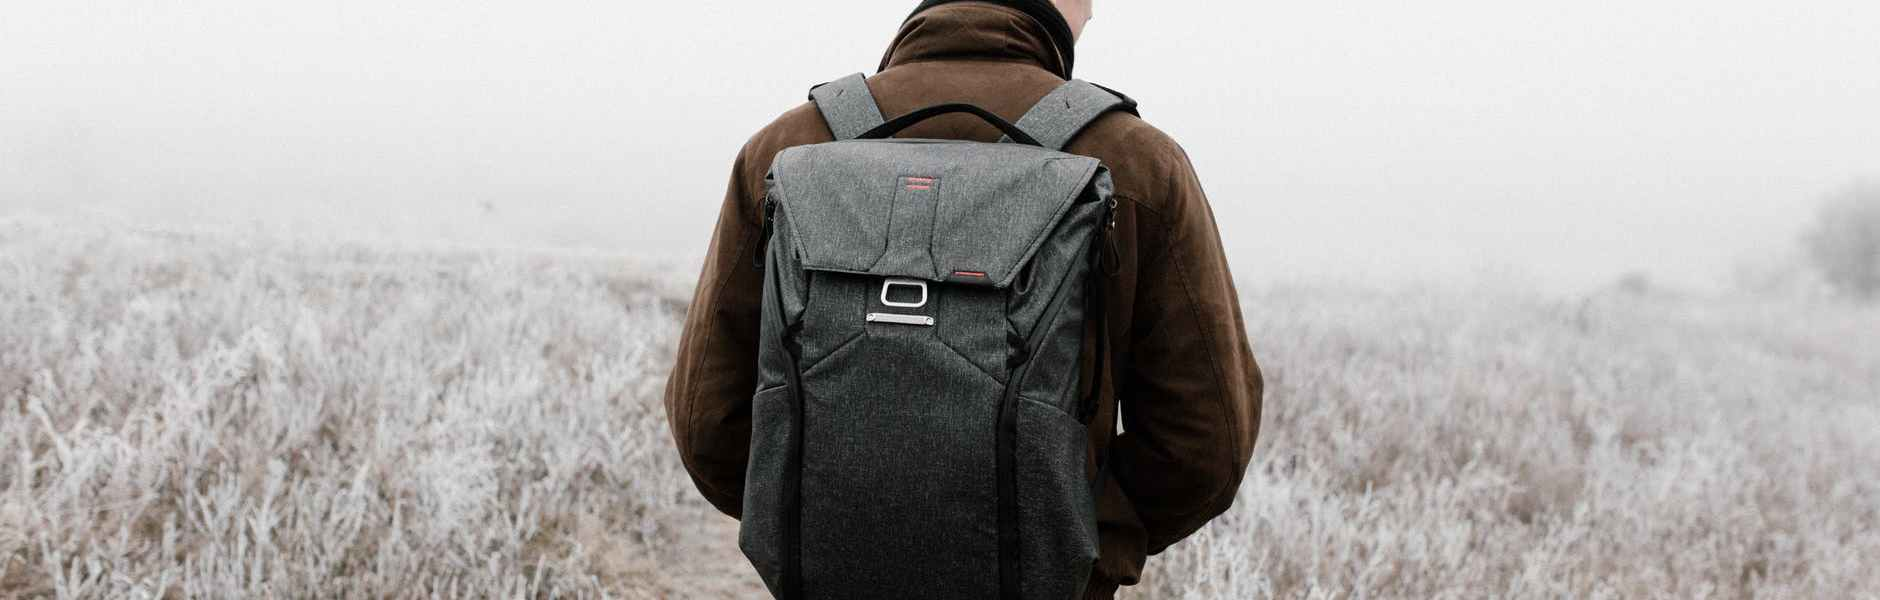 man standing on field carrying a back pack